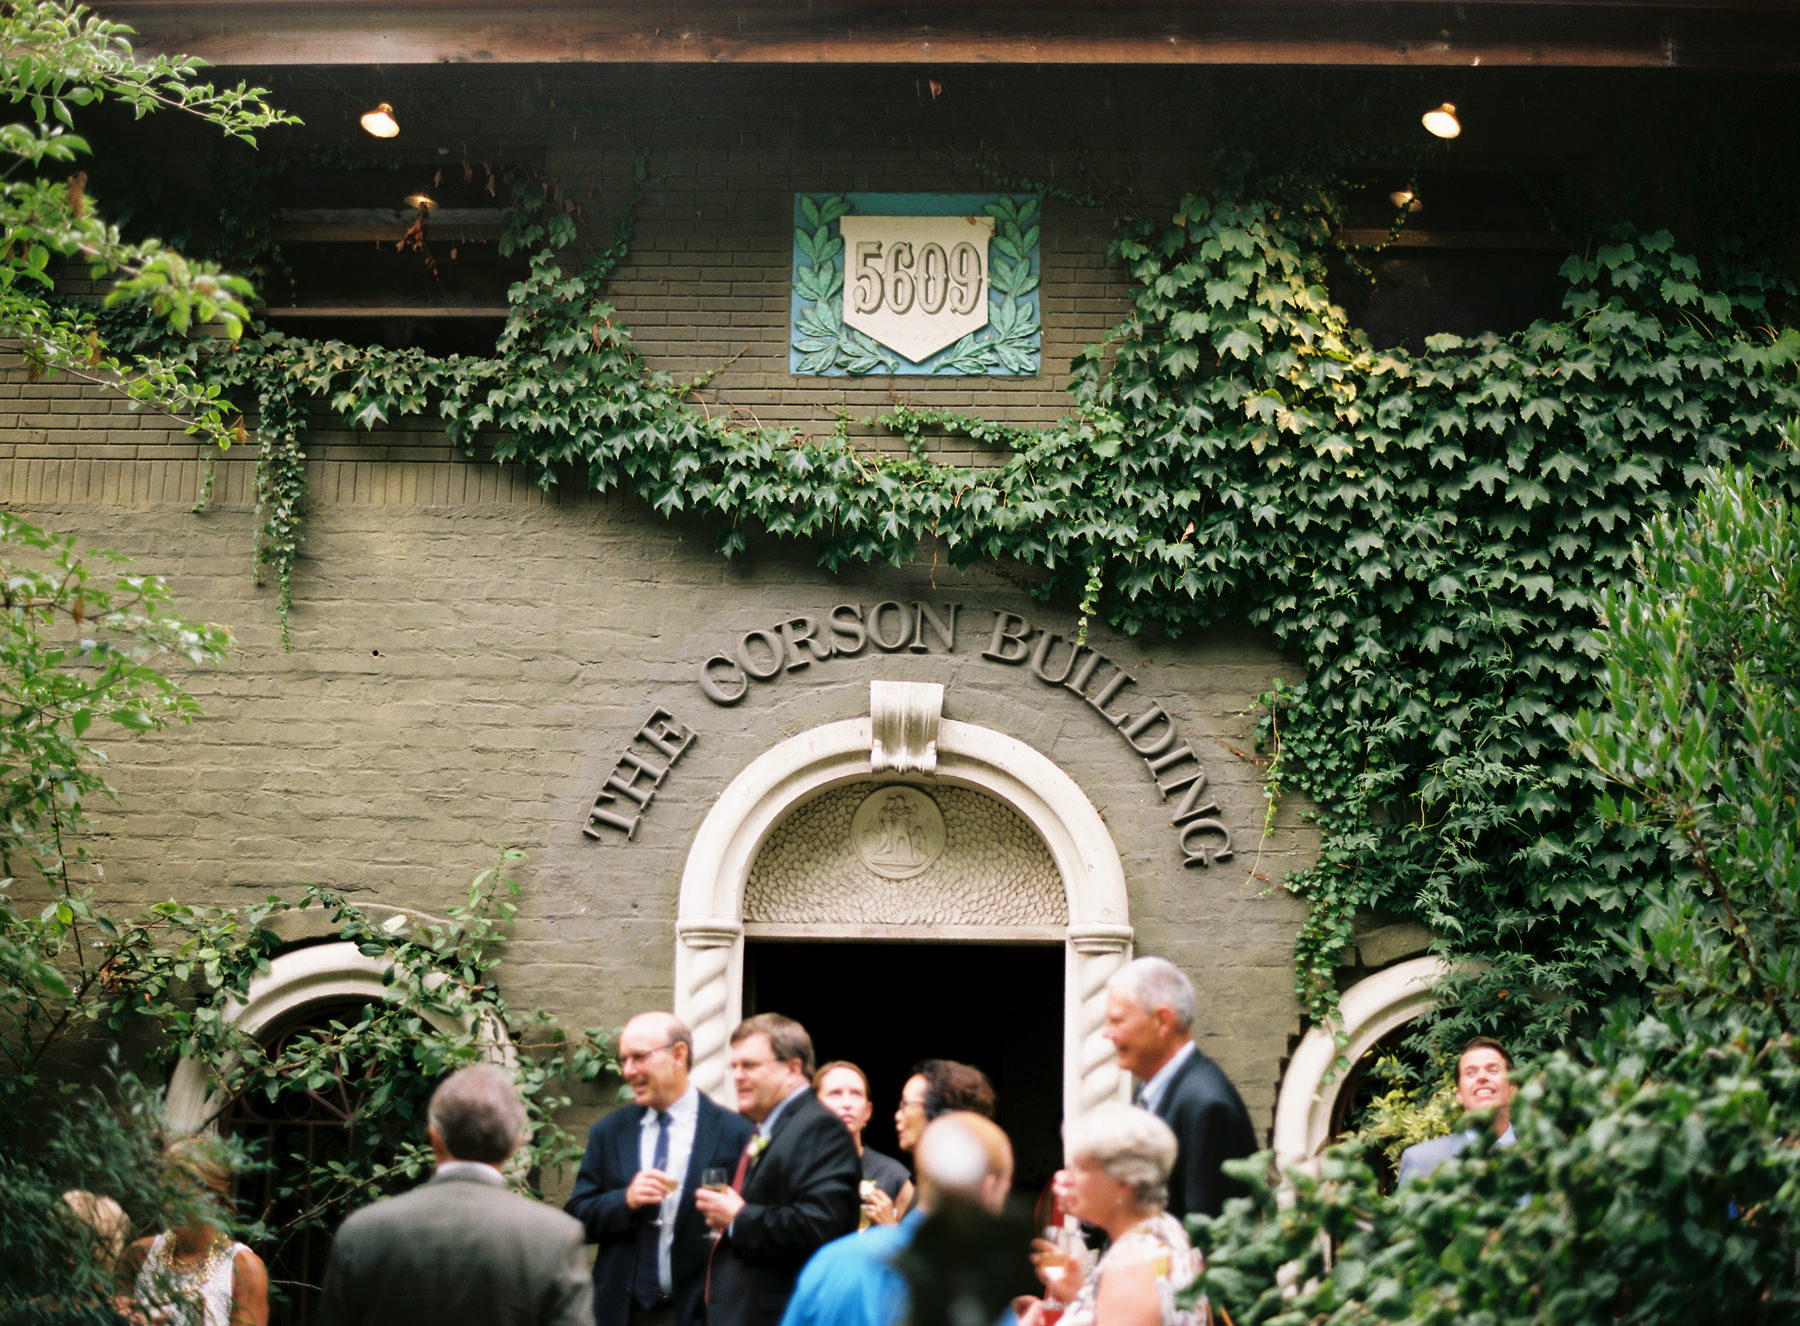 193-outdoor-wedding-at-the-corson-building-in-georgetown-seattle.jpg